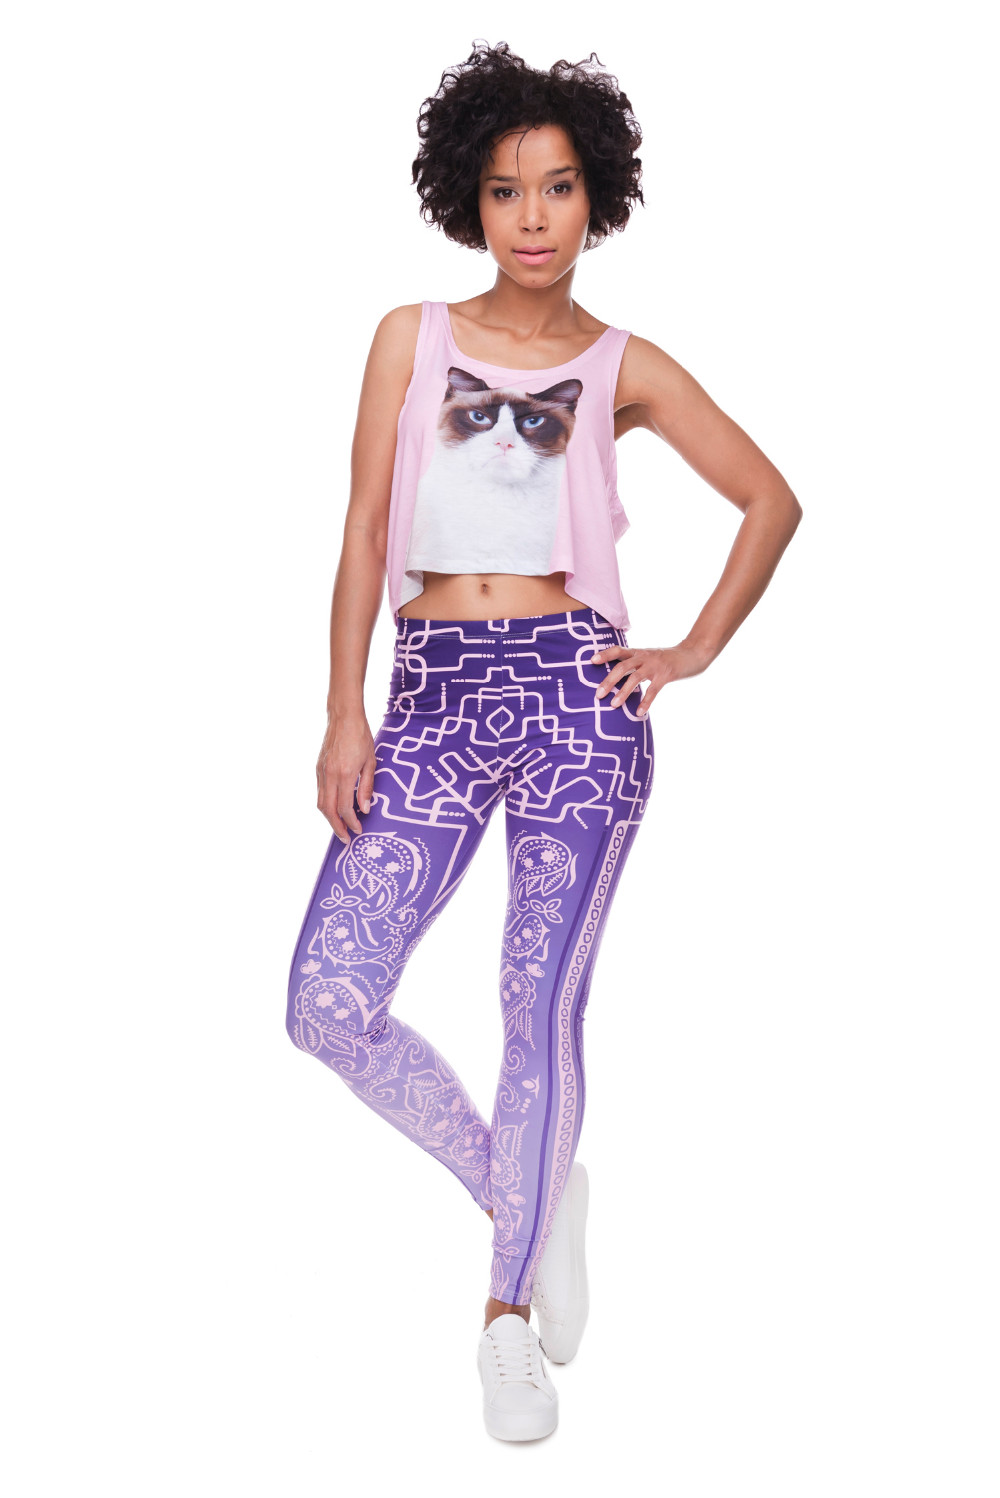 40541 bandana deco purple (7)